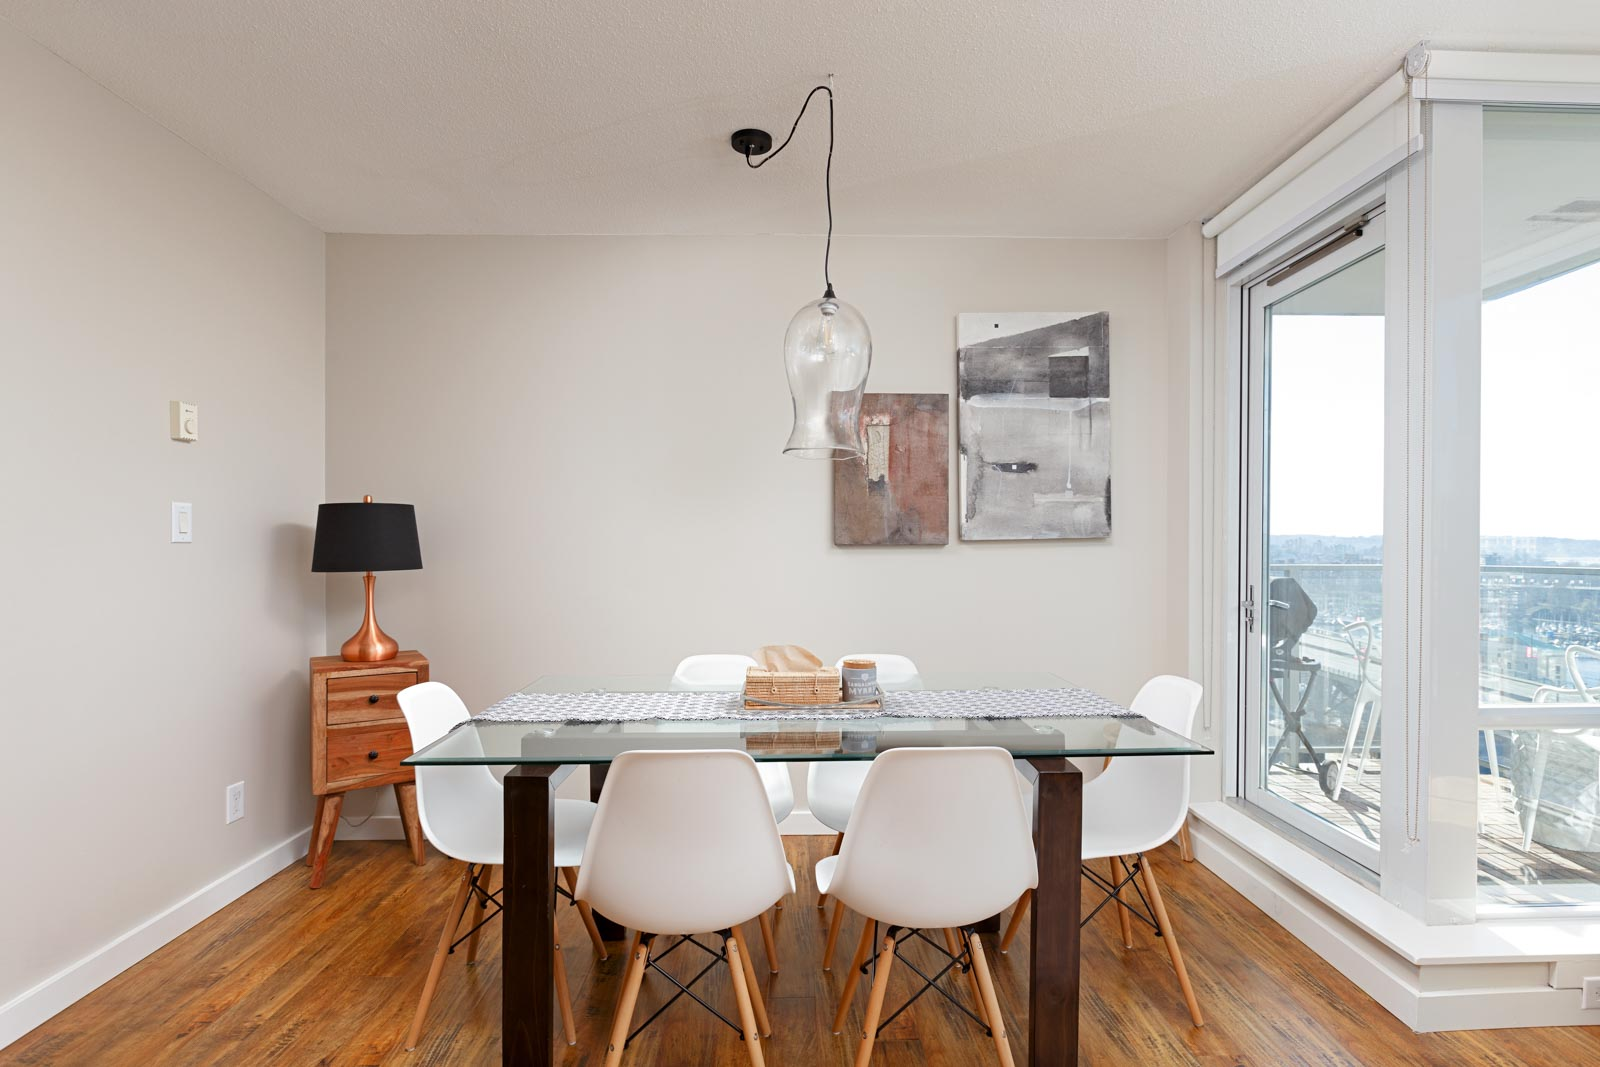 Dining area with glass top table and white chairs in Yaletown Vancouver condo with view.